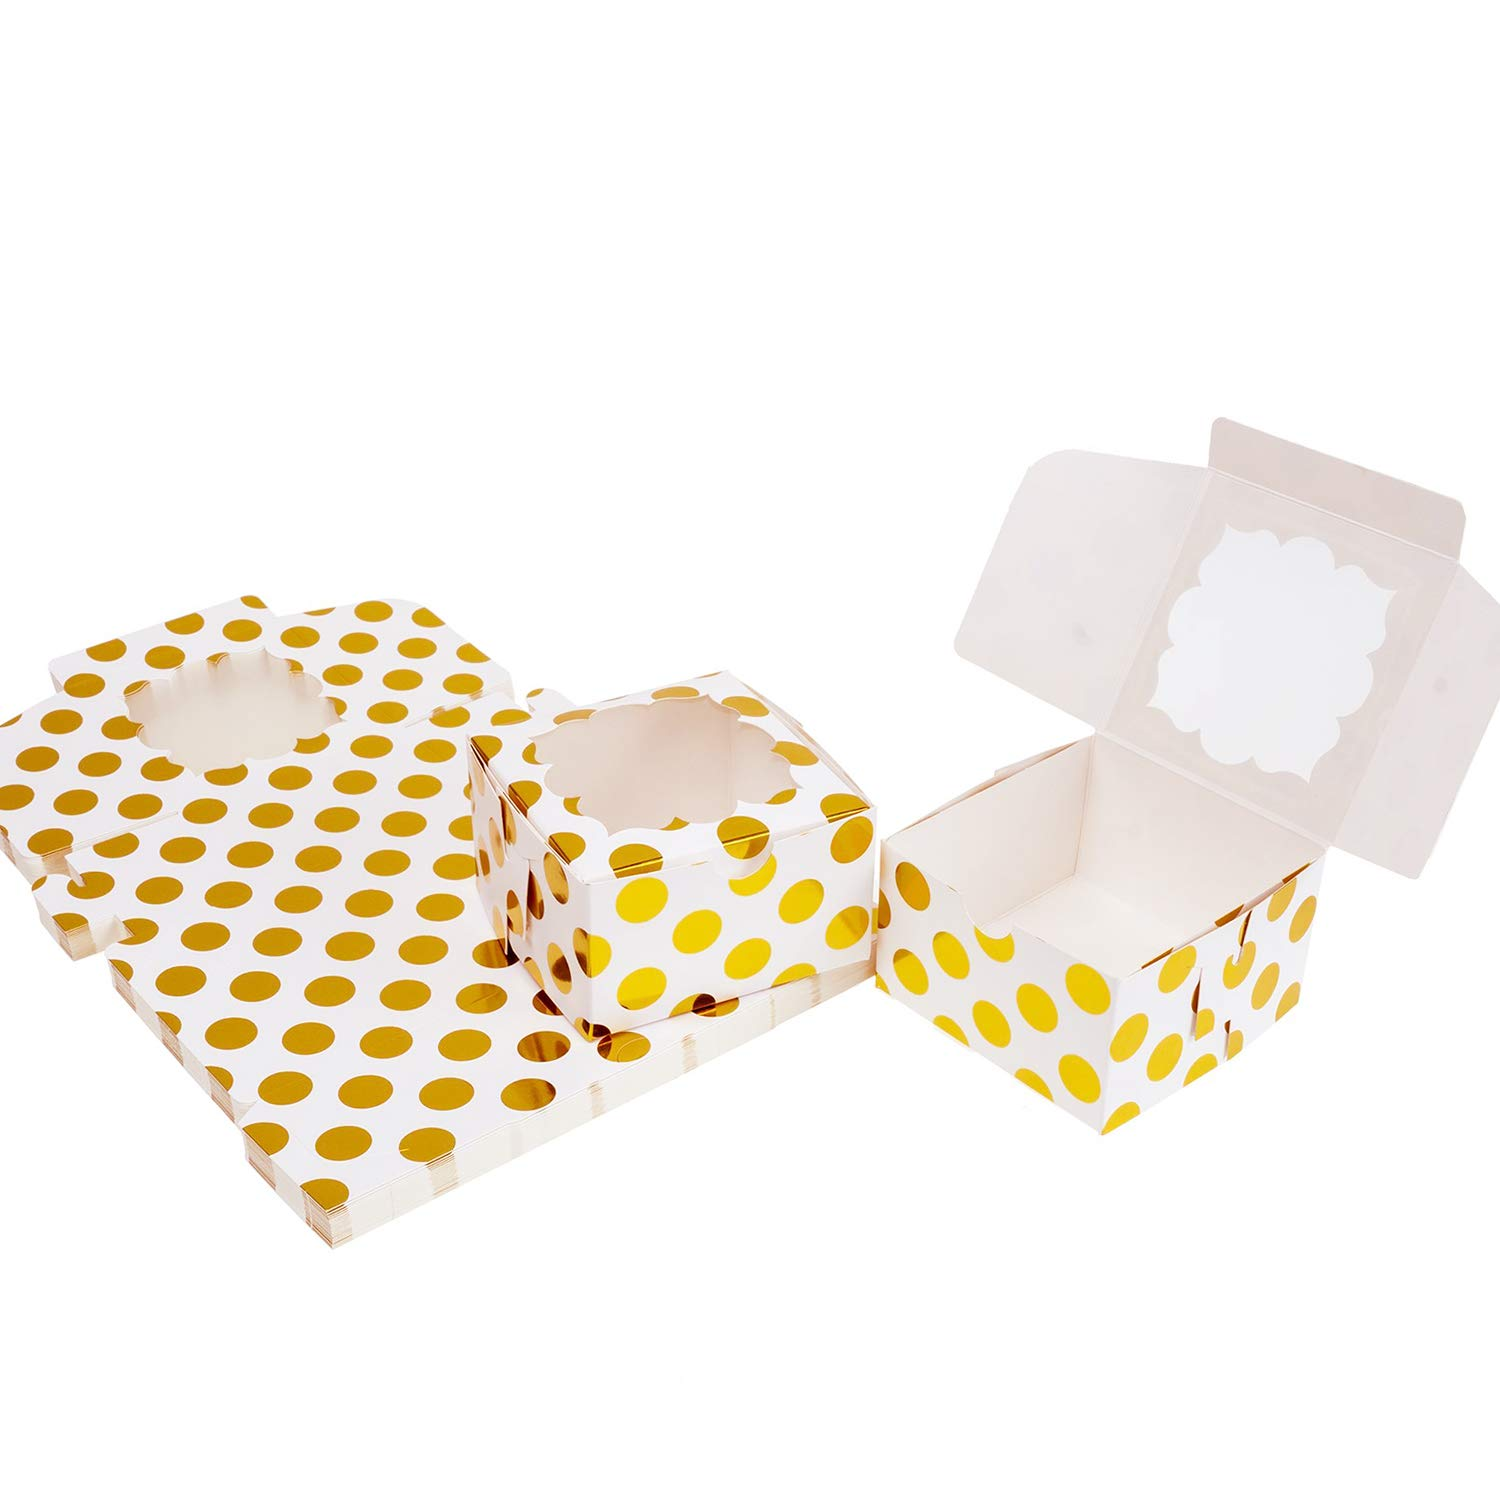 Aekopwera 30 Pack White Bakery Boxes with Window 4x4x2.5 inches, Pastry Boxes Gold Polka Dots Dessert Boxes Treat Boxes for Gift Giving